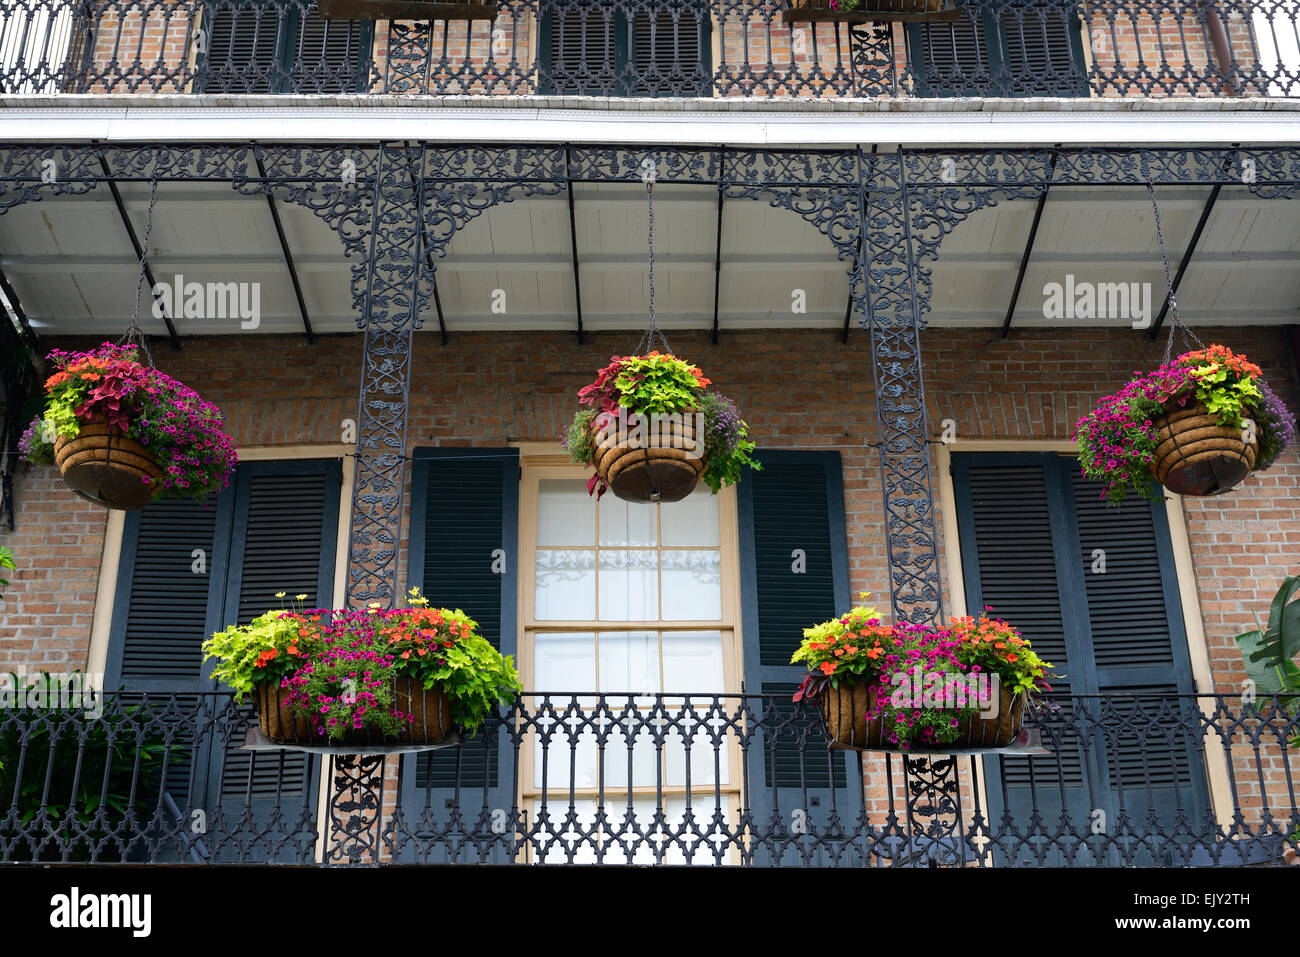 Hanging baskets planters balcony balconies decorate french - Hanging baskets for balcony ...